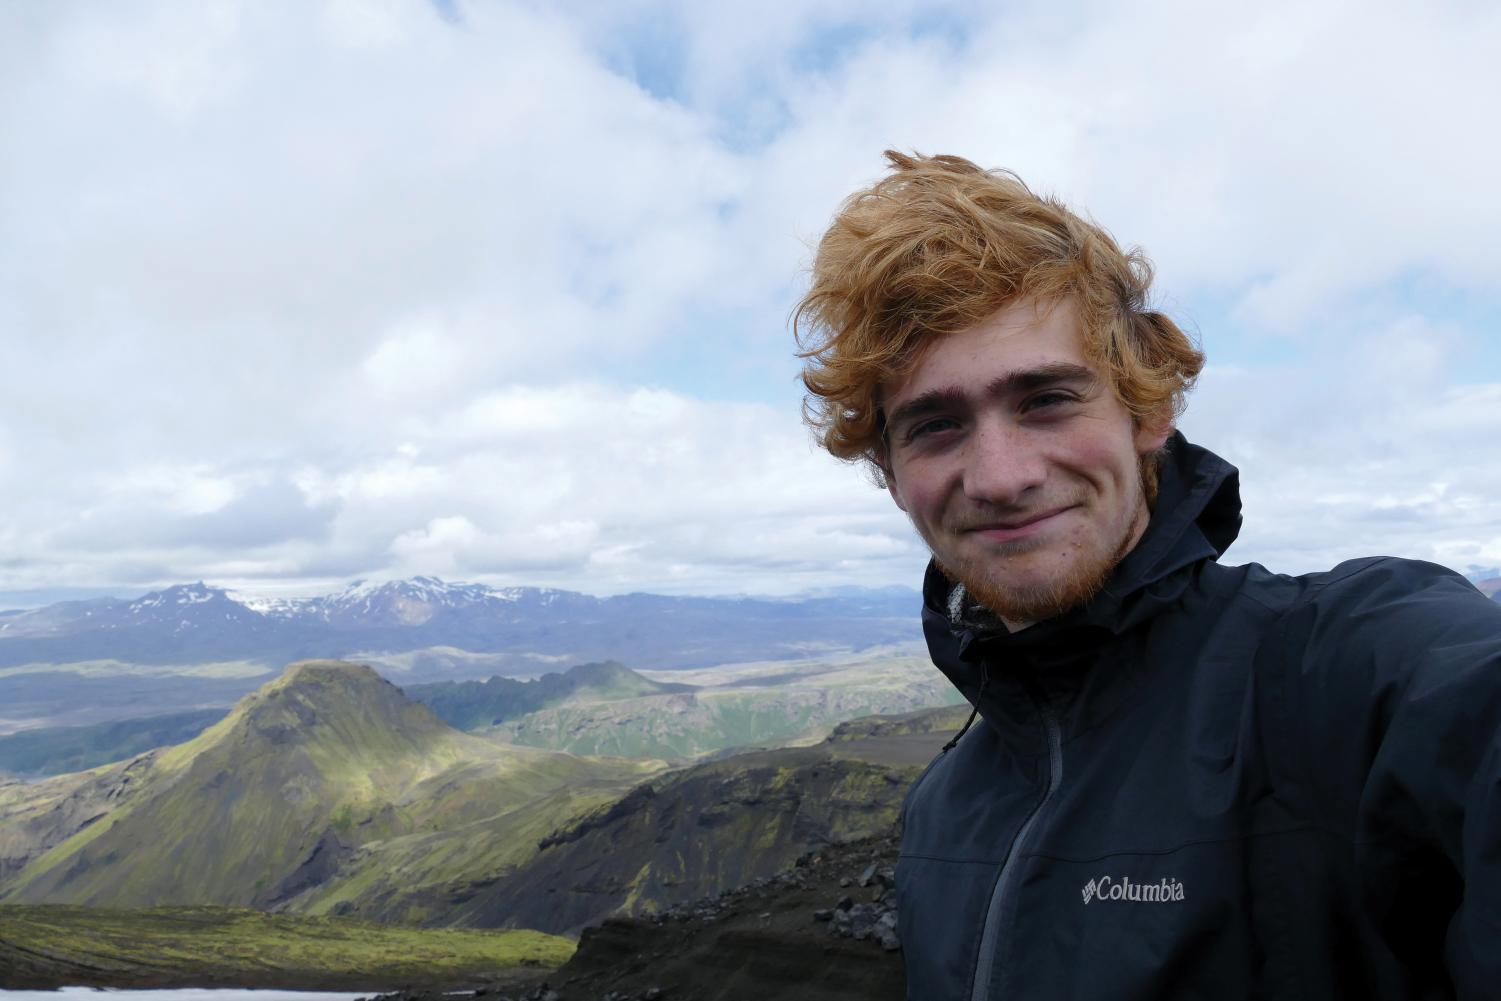 mountain man. Wind whipping through his hair, senior Reuben Slade takes a selfie on a mountain in Iceland, where he went on a five-day solo hike during summer break.